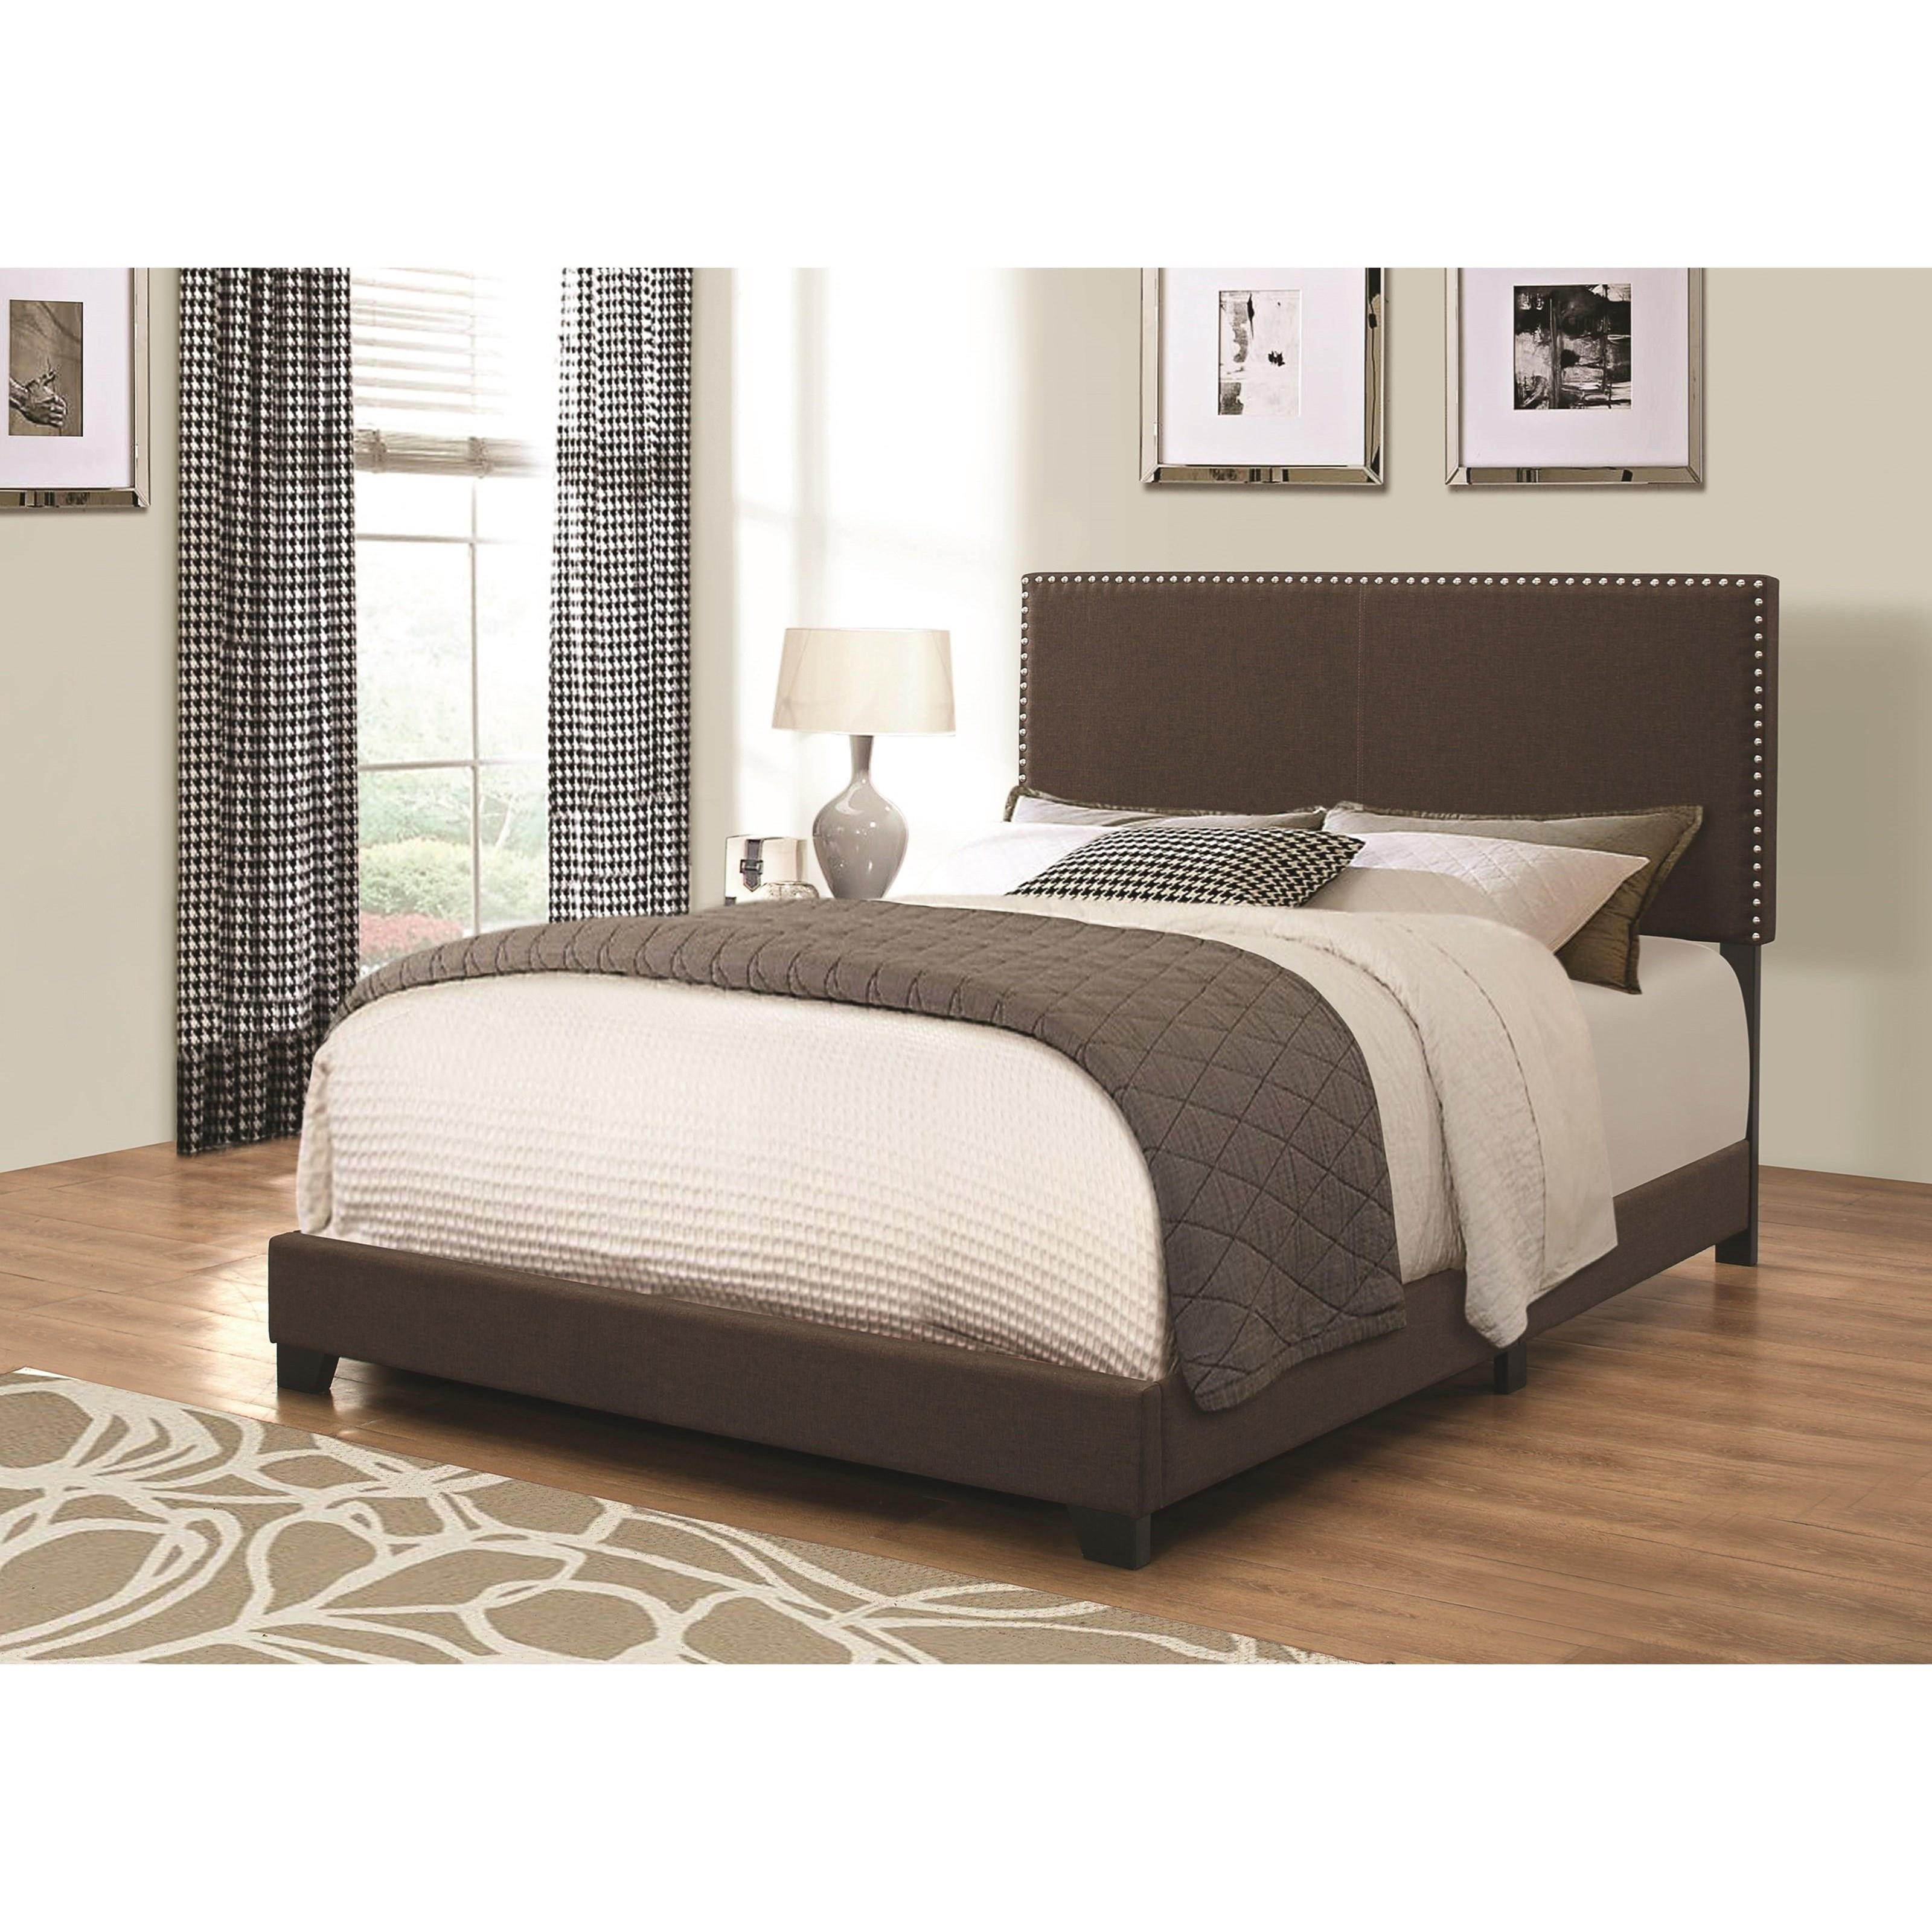 Coaster Upholstered Beds King Bed - Item Number: 350081KE